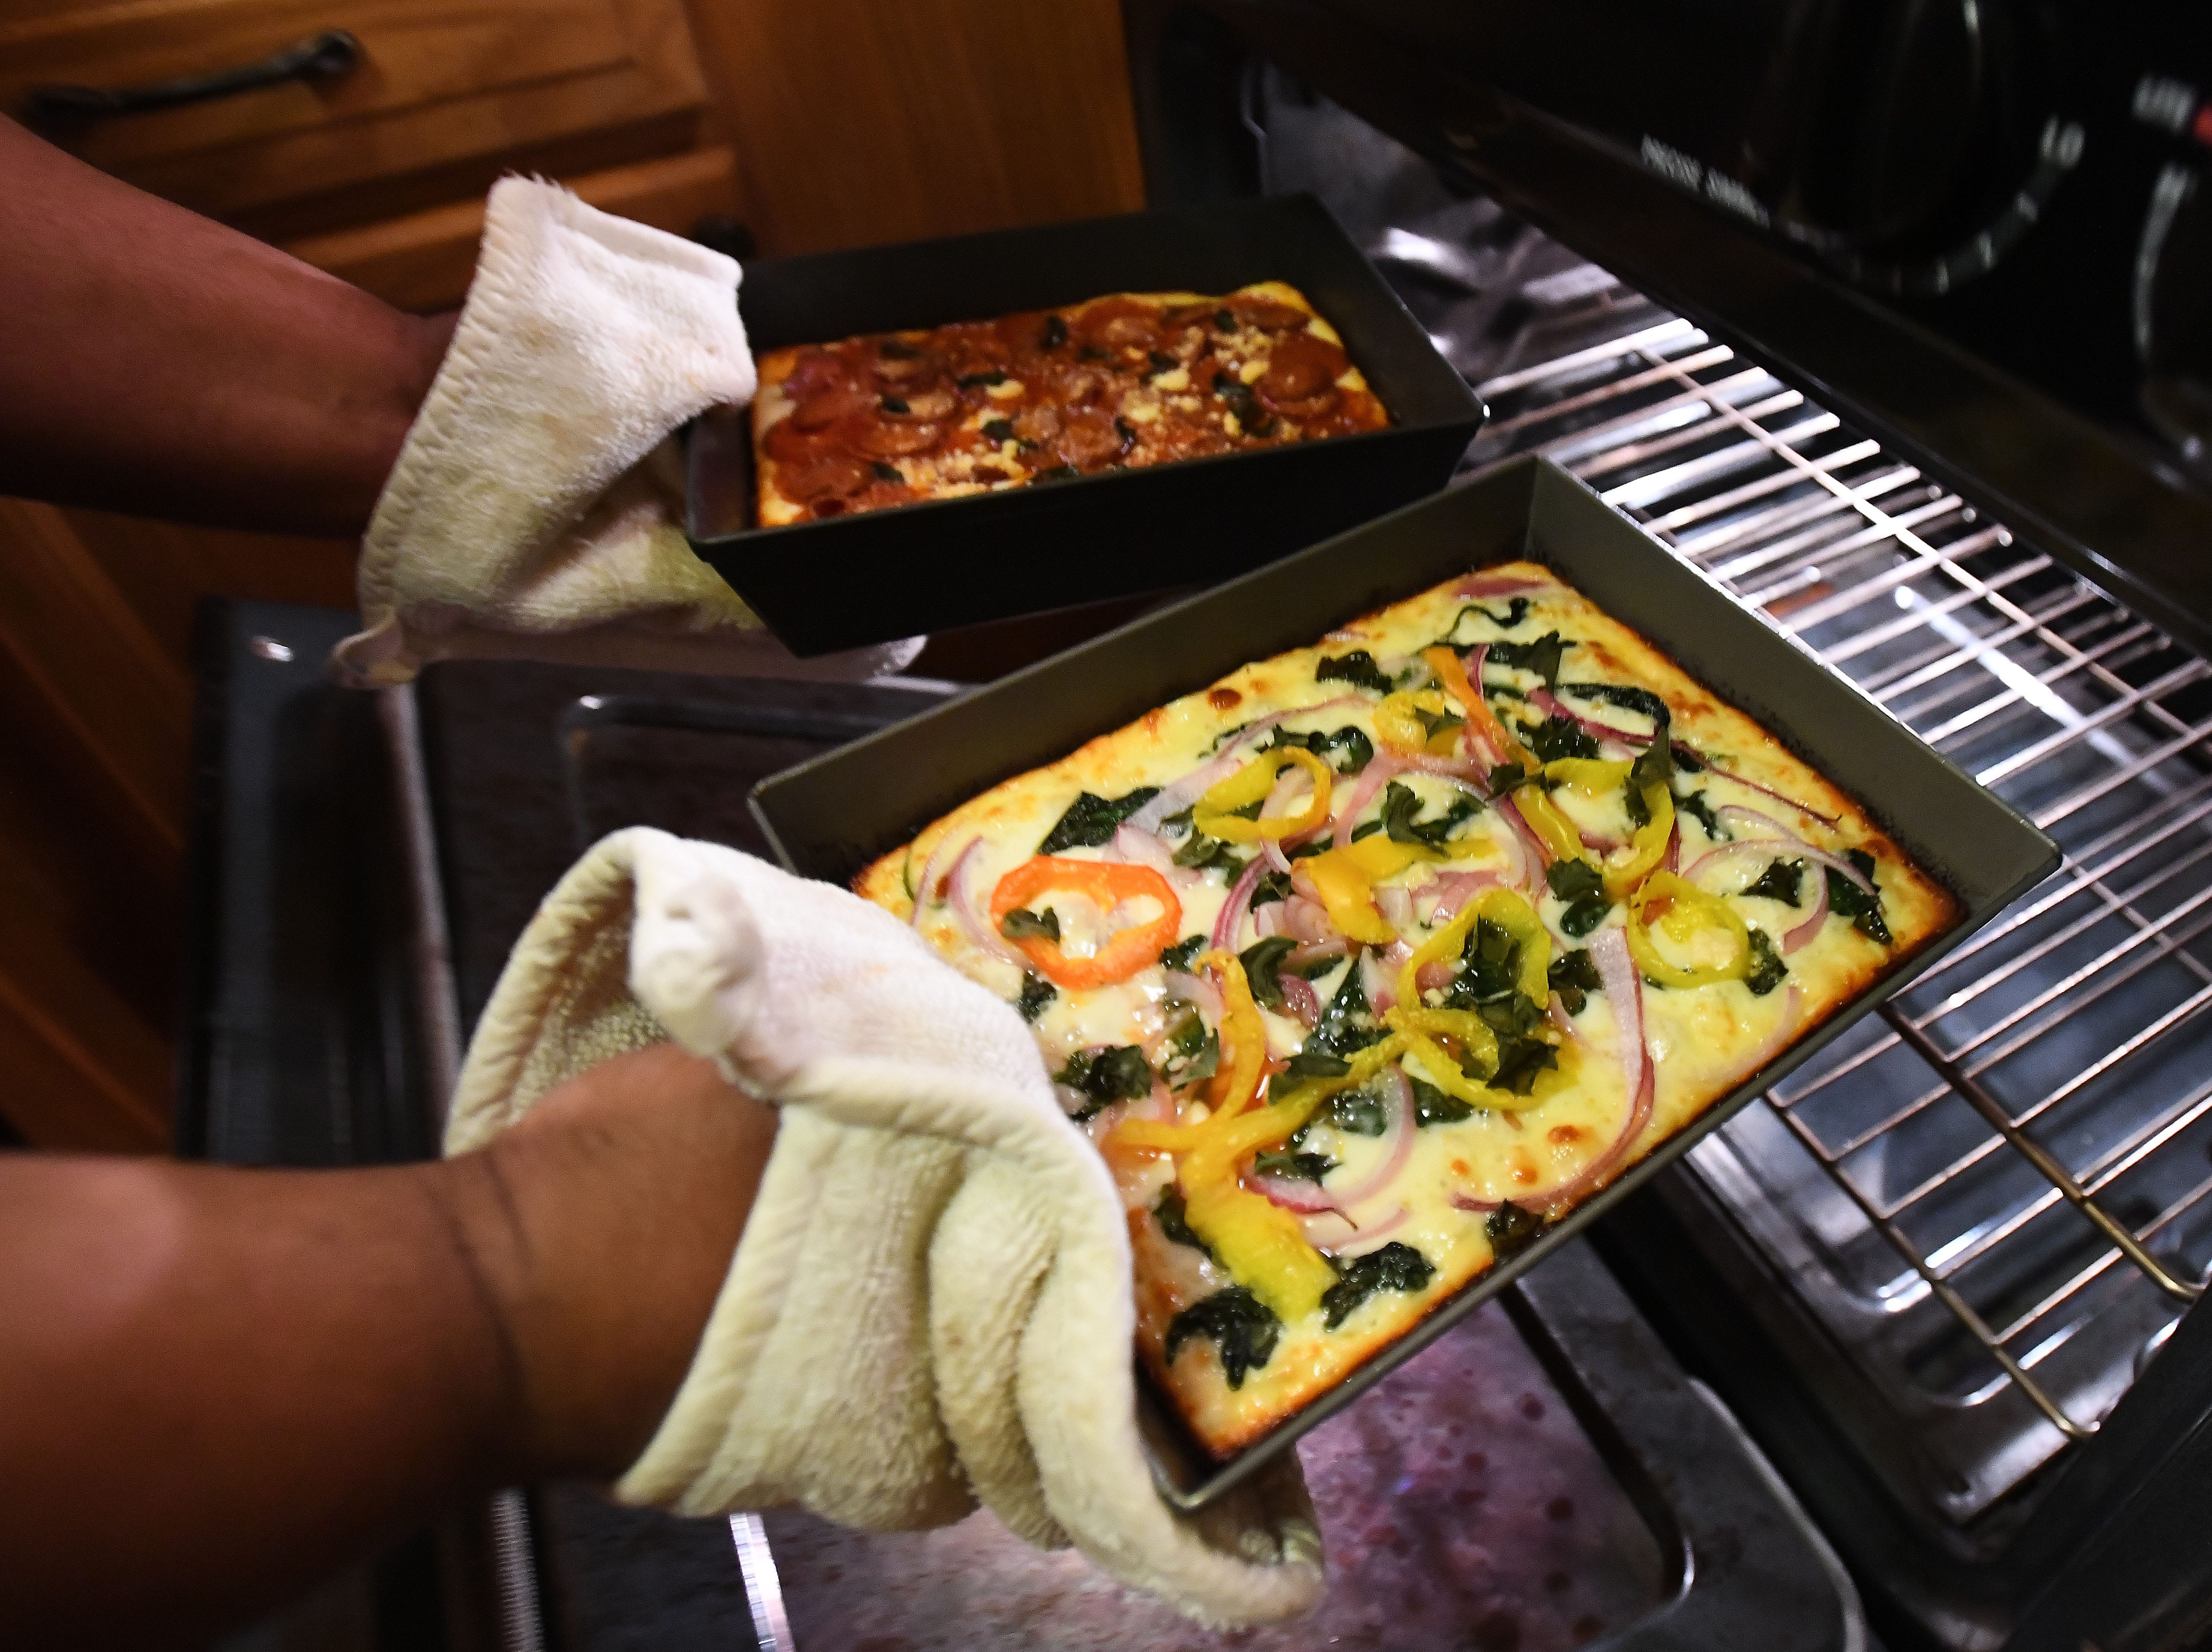 Instachef Cliff Skighwalker takes out a pepperoni and sausage pizza and a veggie pizza at his home in Pontiac.